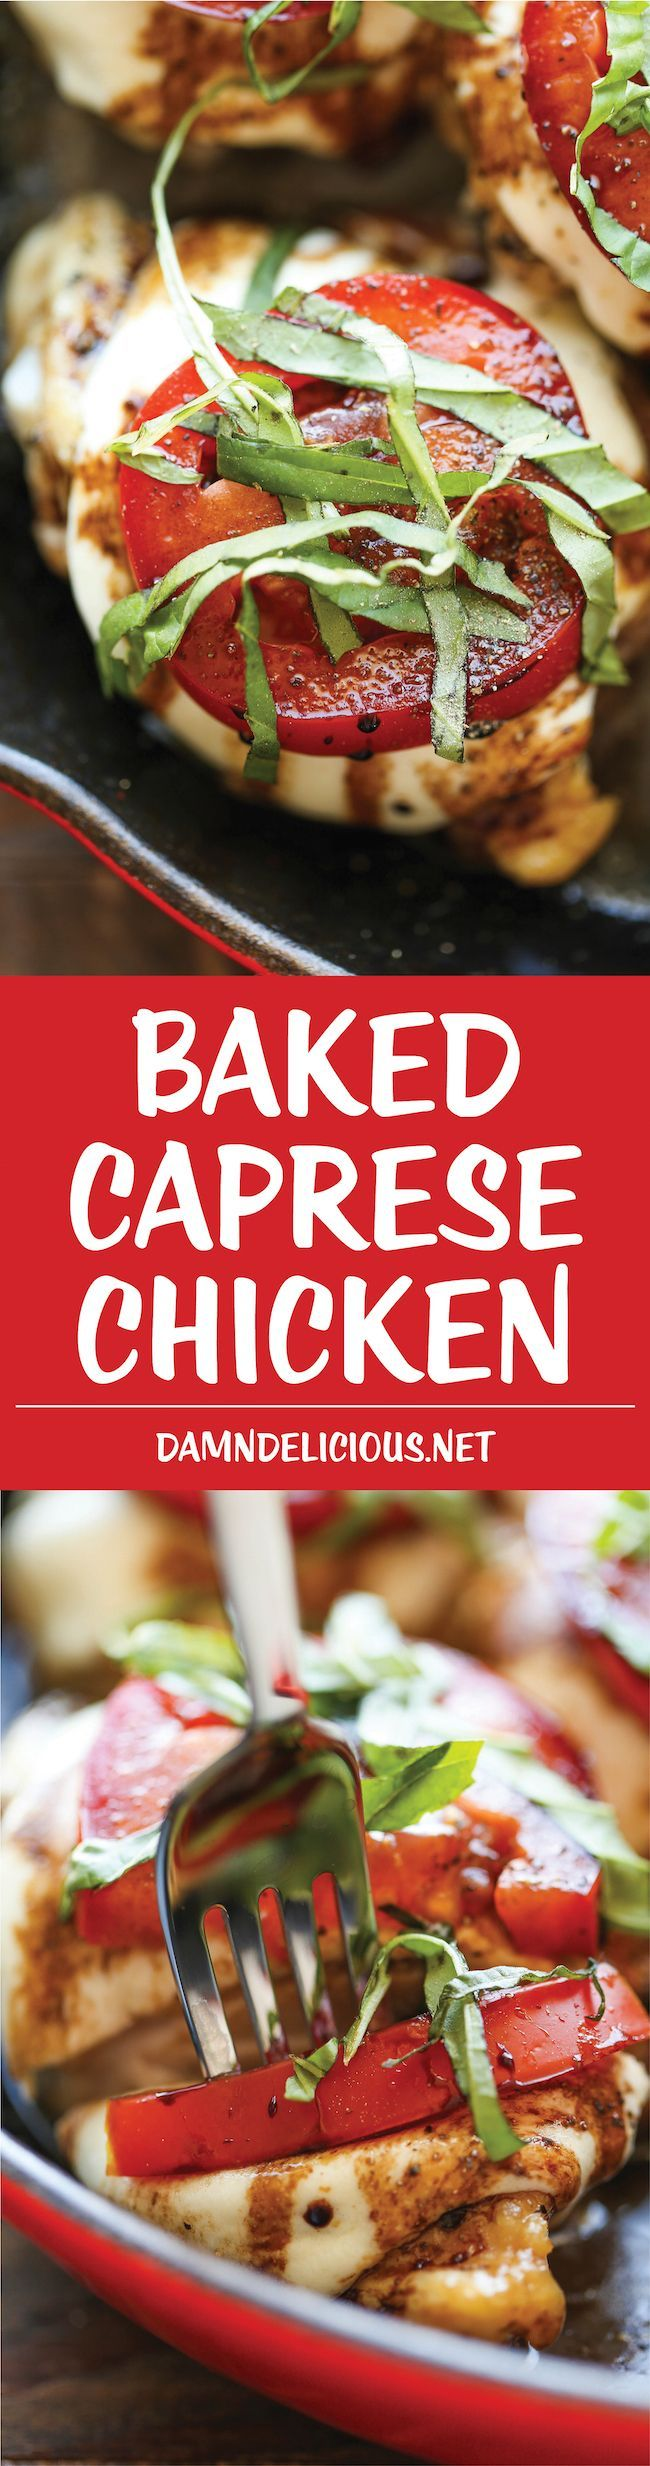 Baked Caprese Chicken - Amazingly crisp-tender chicken baked with melted mozzarella and topped with juicy tomatoes, fresh basil and balsamic reduction!